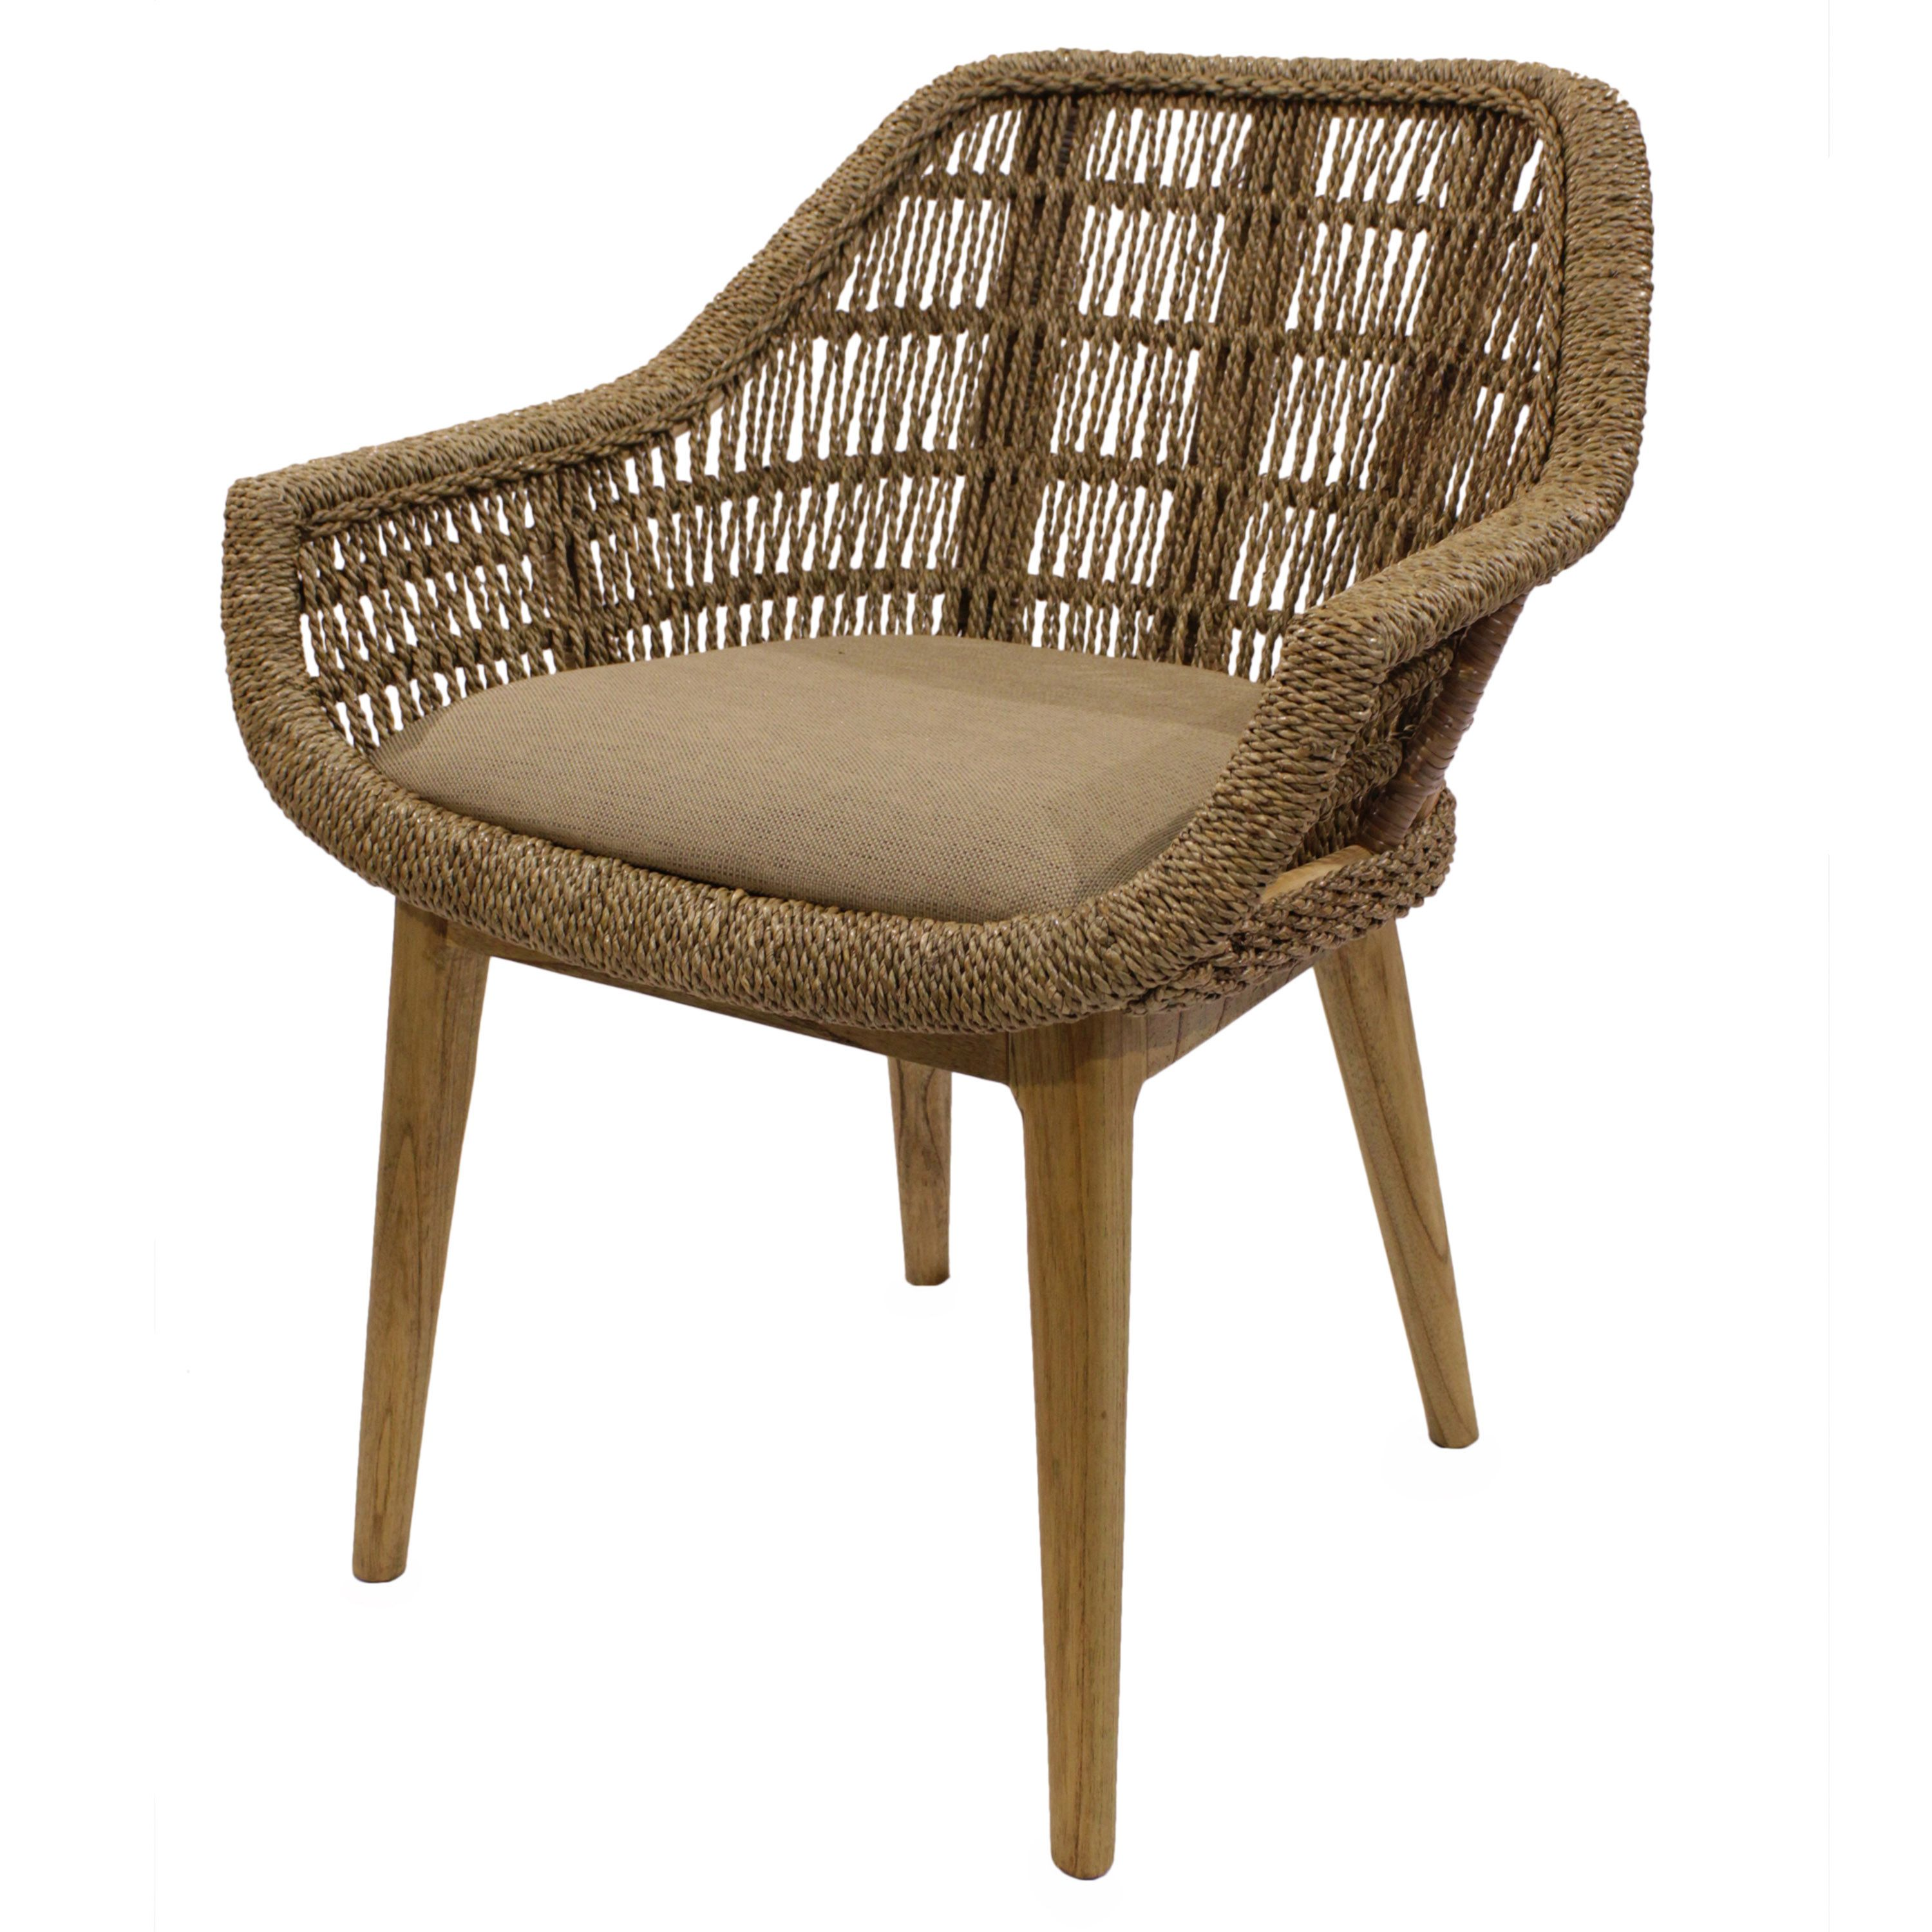 Leia KD Rattan and Seagrass Side Chair Natural Material Seagrass